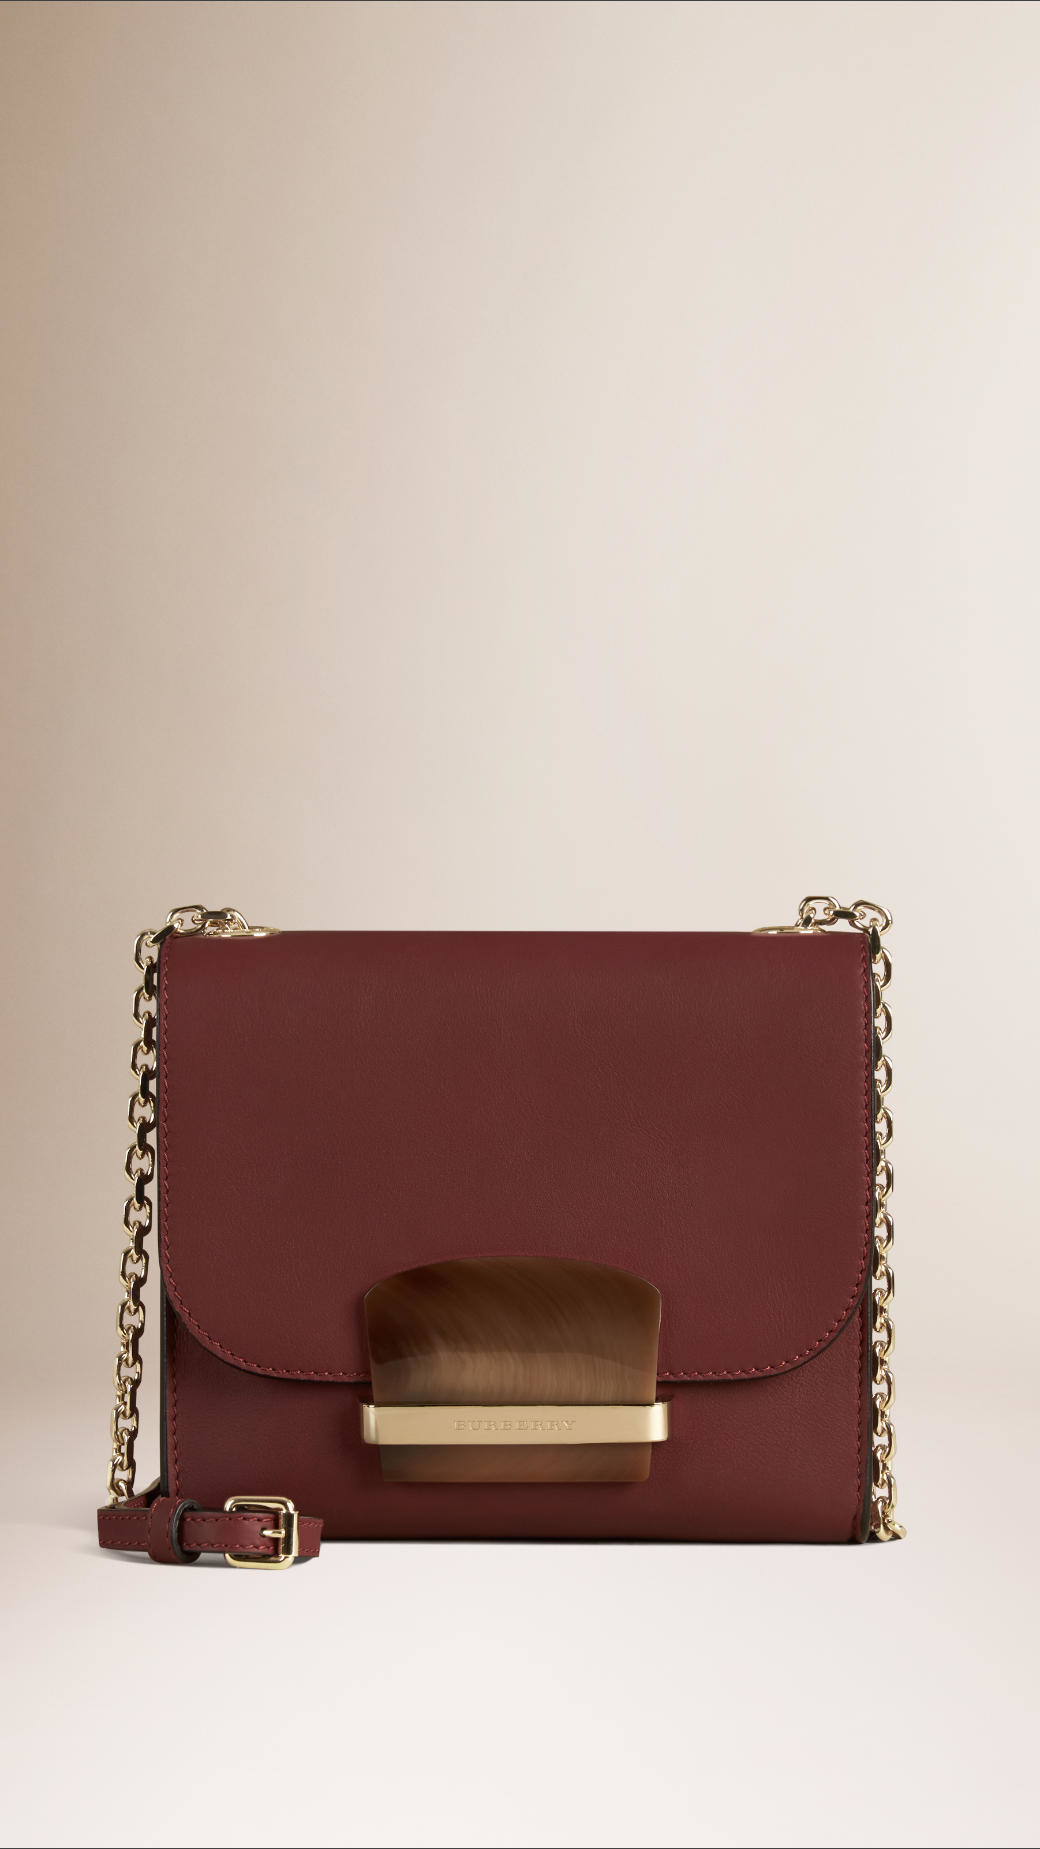 eb05b3e56216 Lyst - Burberry Small Leather Cross-Body Bag in Brown